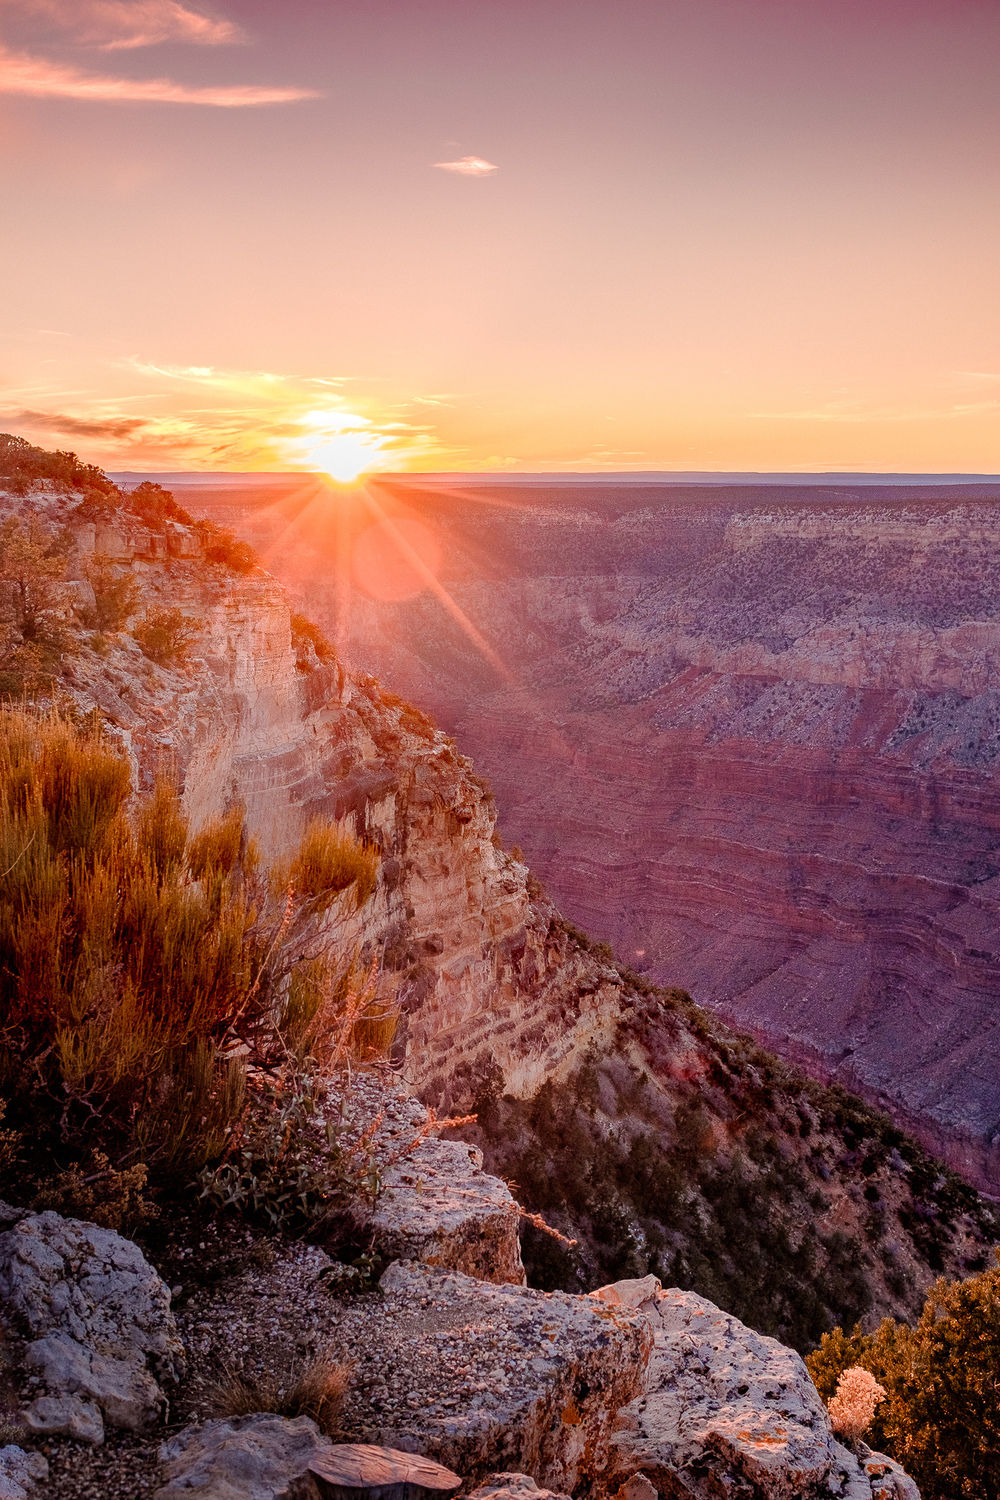 Grand Canyon Sunset -   The sun dips below the Grand Canyon rim, casting a spectacular array of colors. [ Fujifilm X100t, f/5, 1/150s, ISO 200 ]